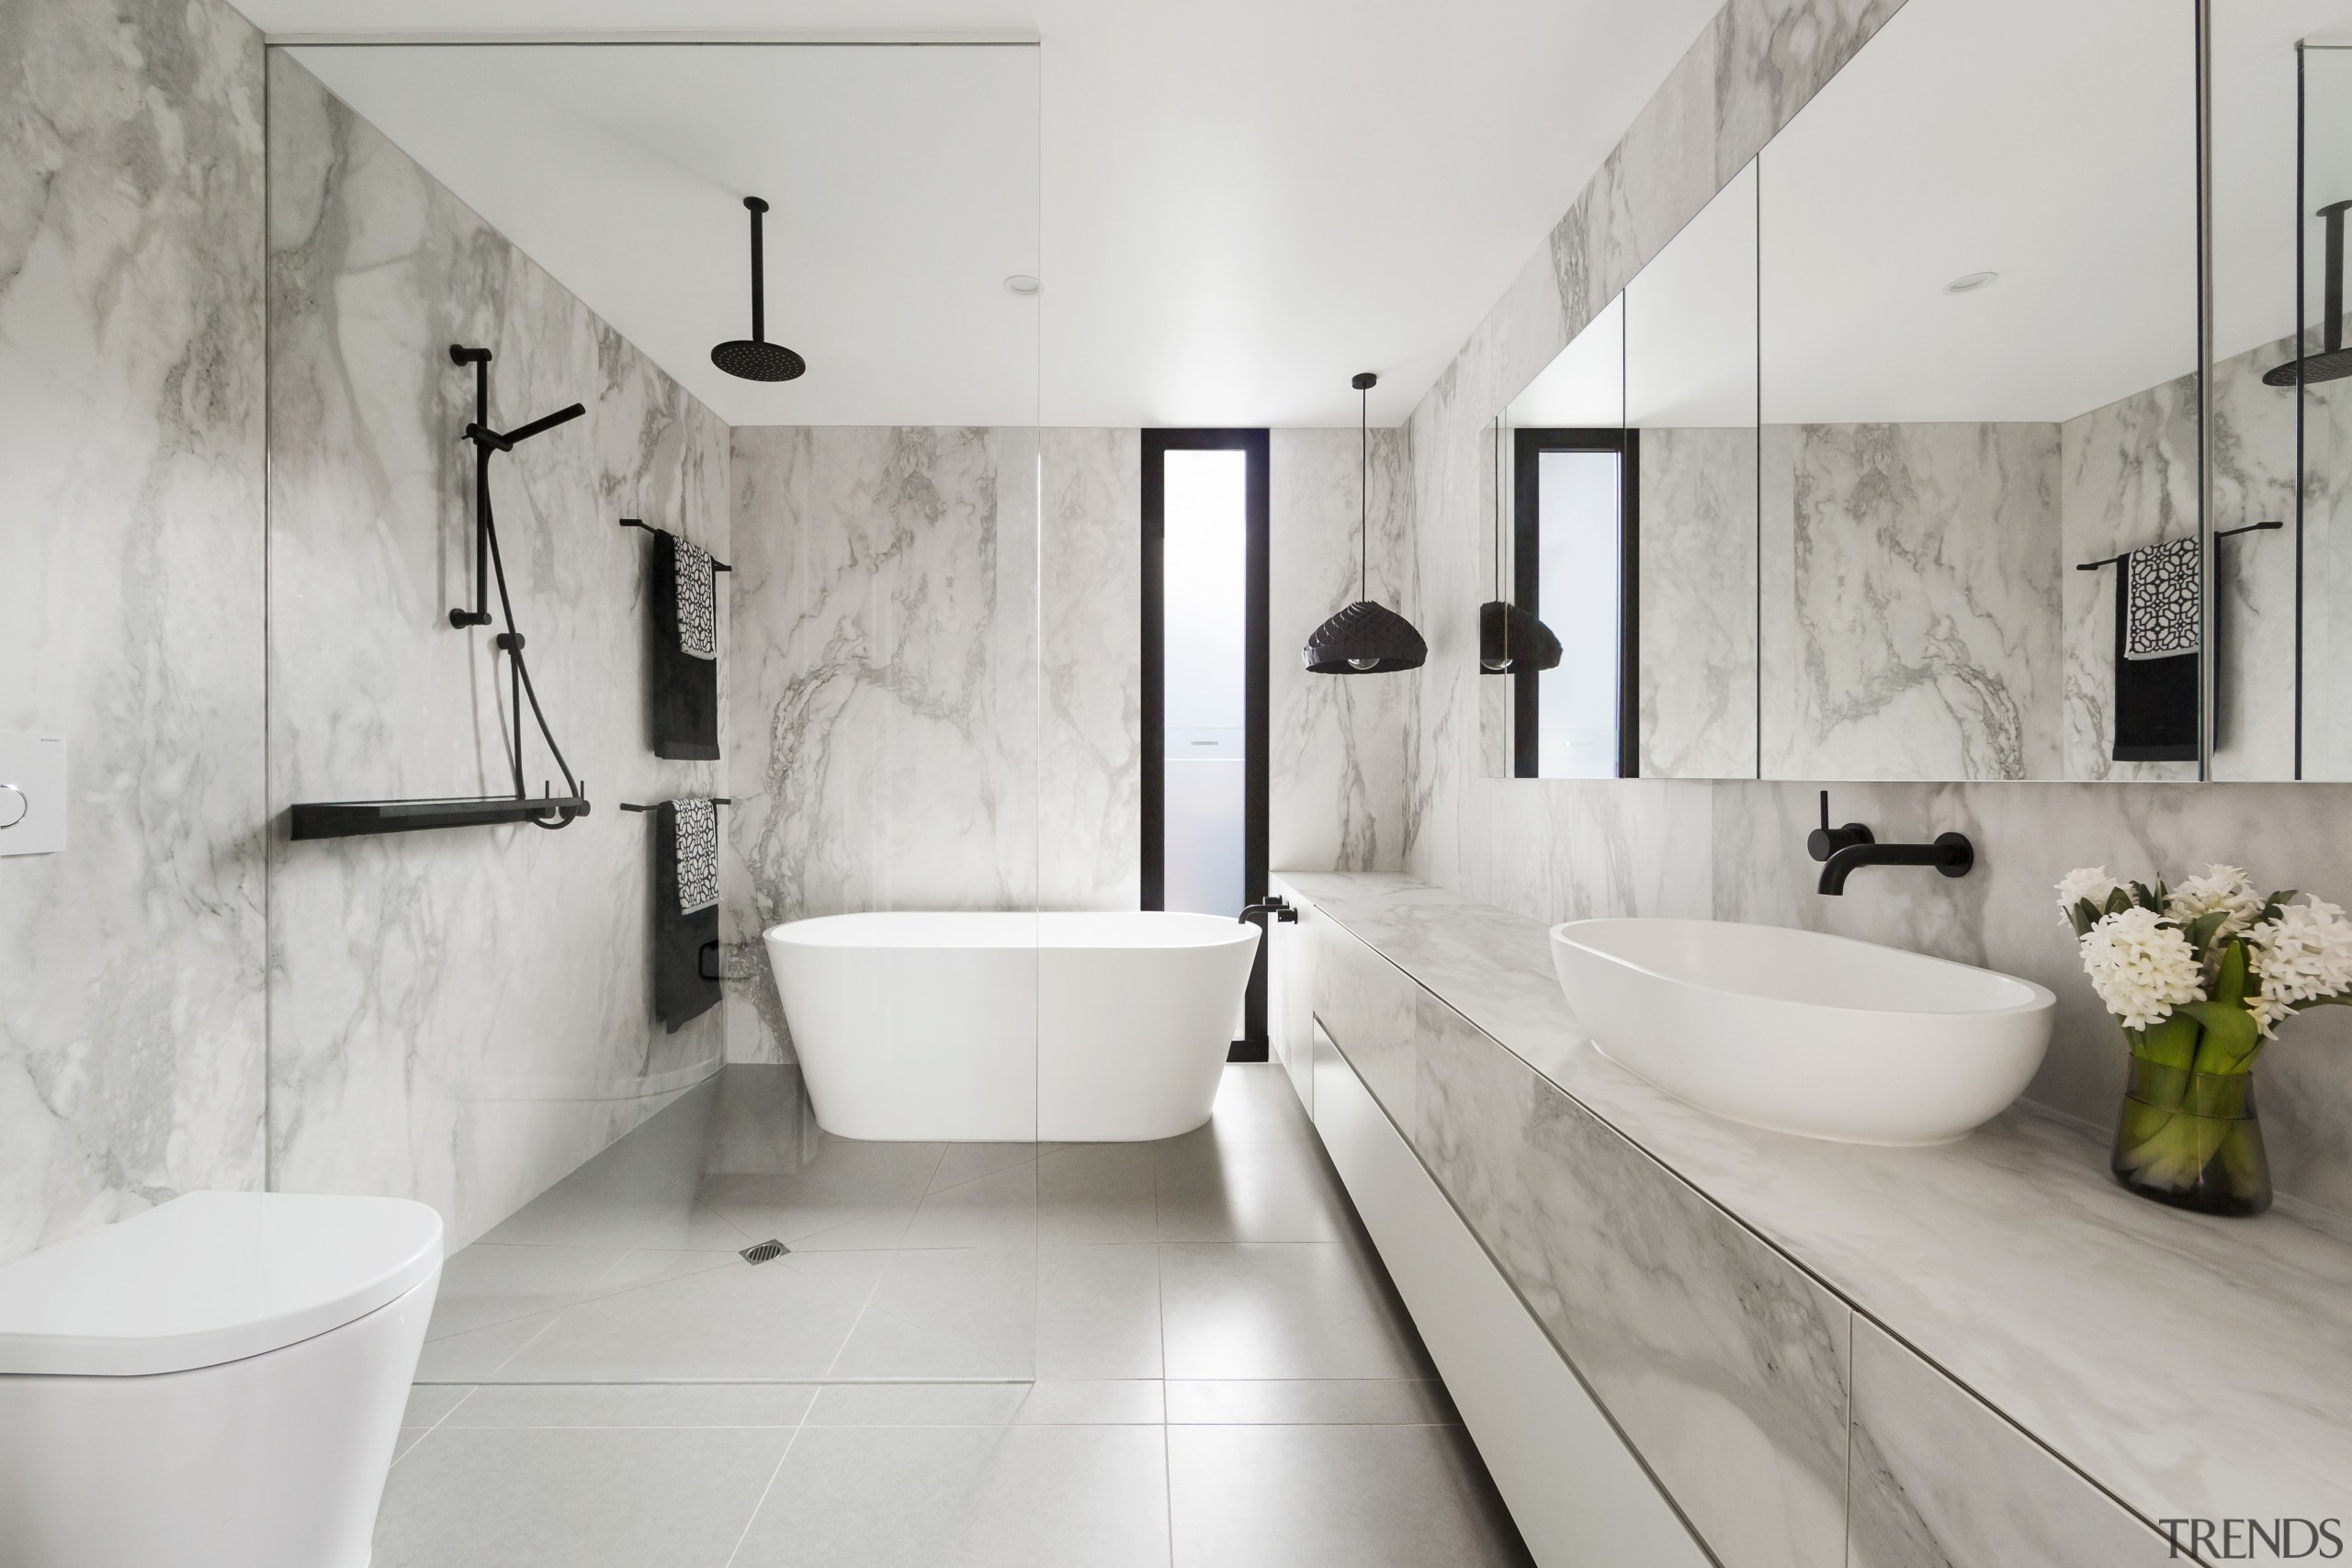 Project architect Linda Simons of LSA Architects created architecture, bathroom, tiled floor, home, bathroom design, plumbing fixture, tap, marble, freestanding bath, LSA Architects